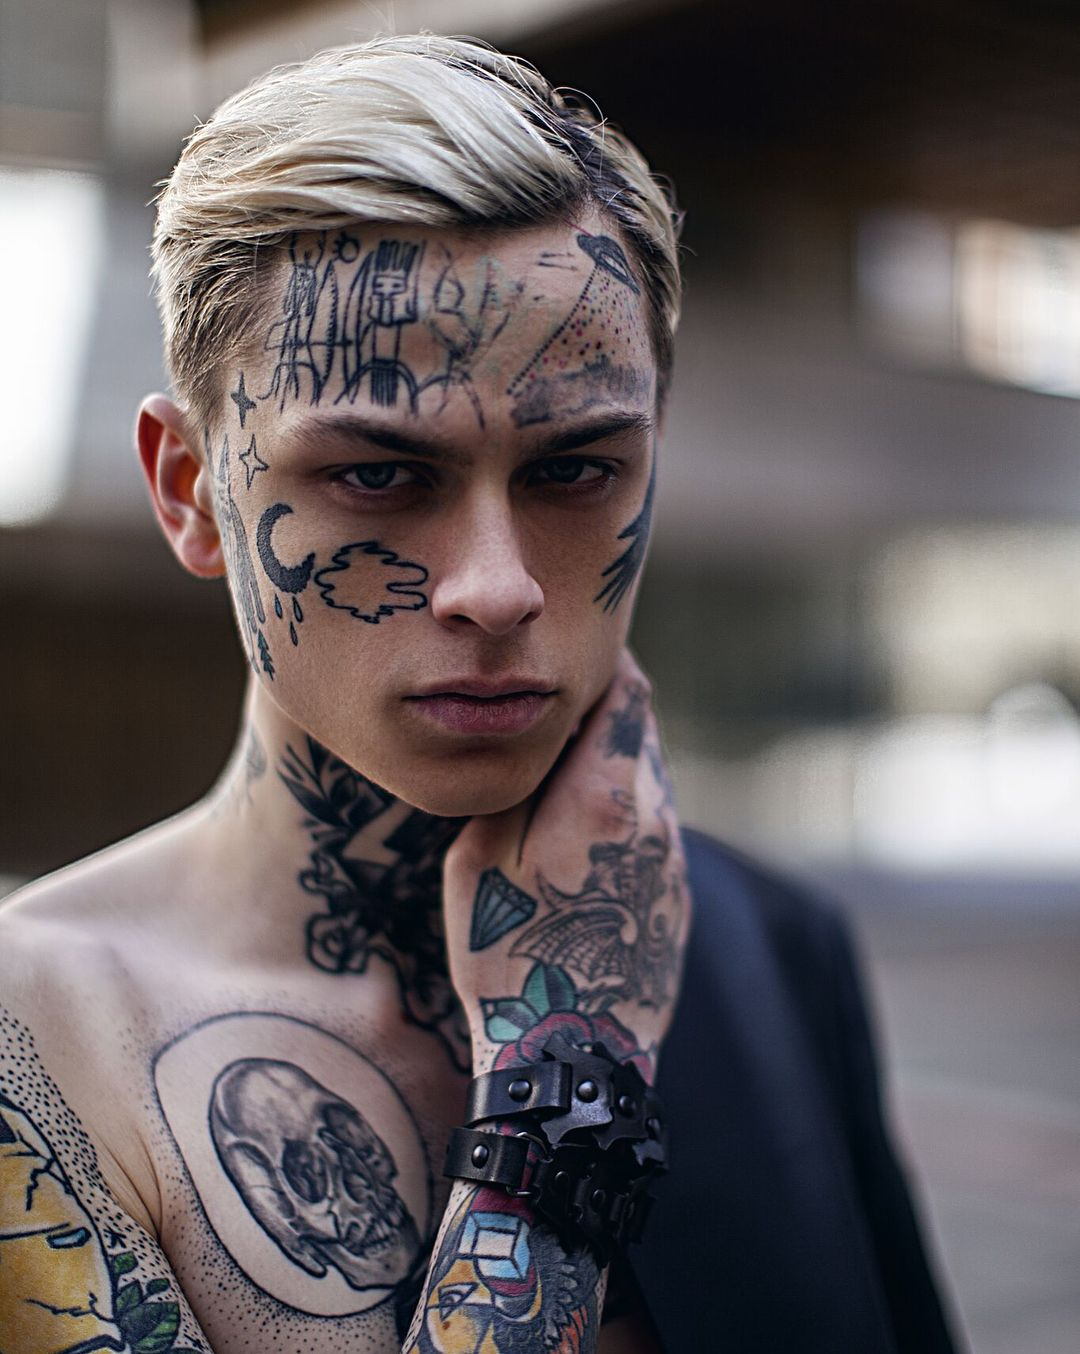 Cool face tattoo for young boy Model laviedekirill Cool